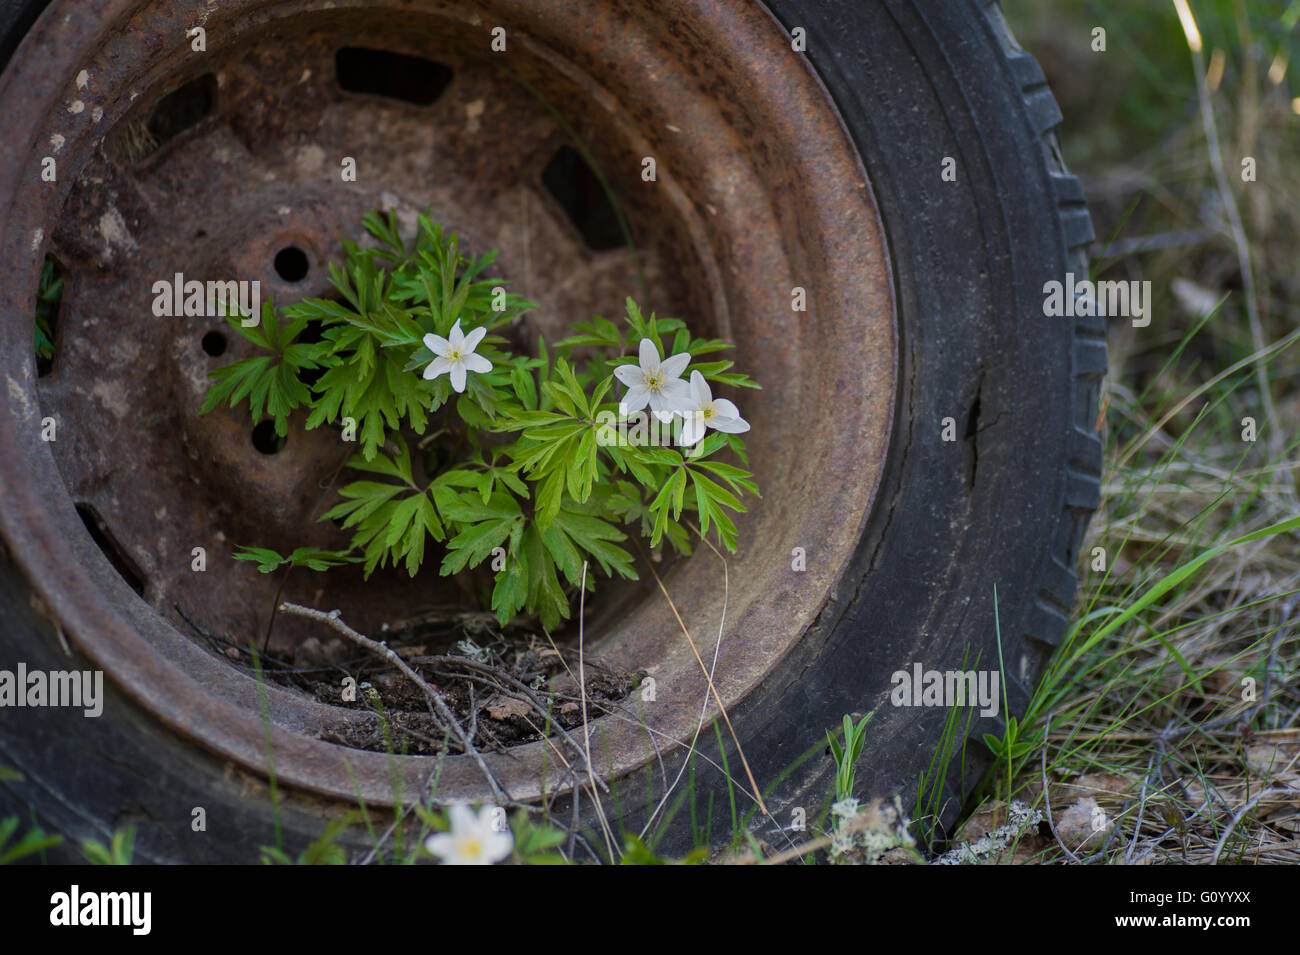 Anemones growing in a rusty old car tire. - Stock Image